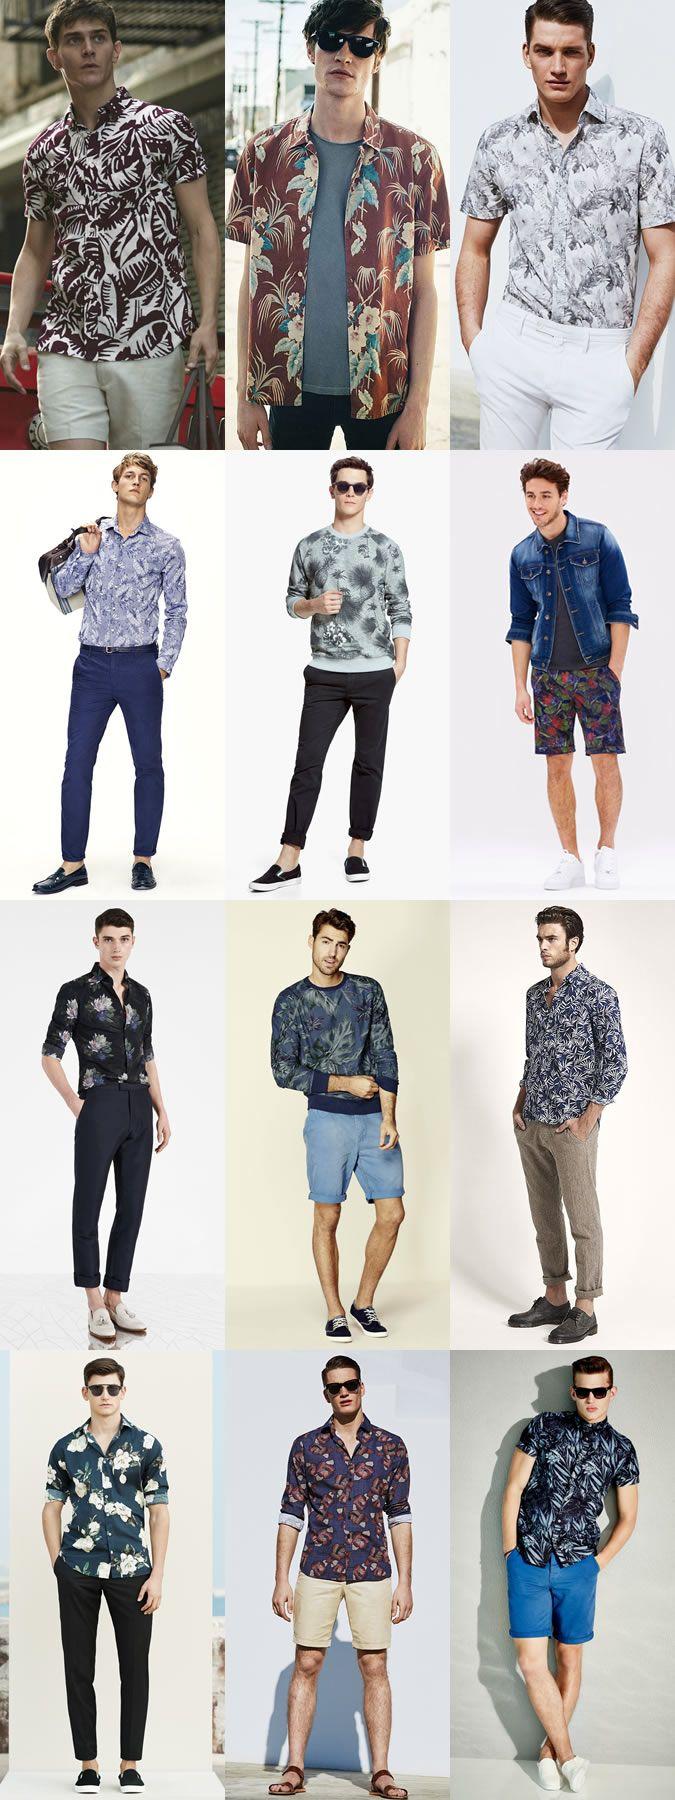 Men's Summer Style: Dark and Masculine Floral Prints Outfit Inspiration Lookbook